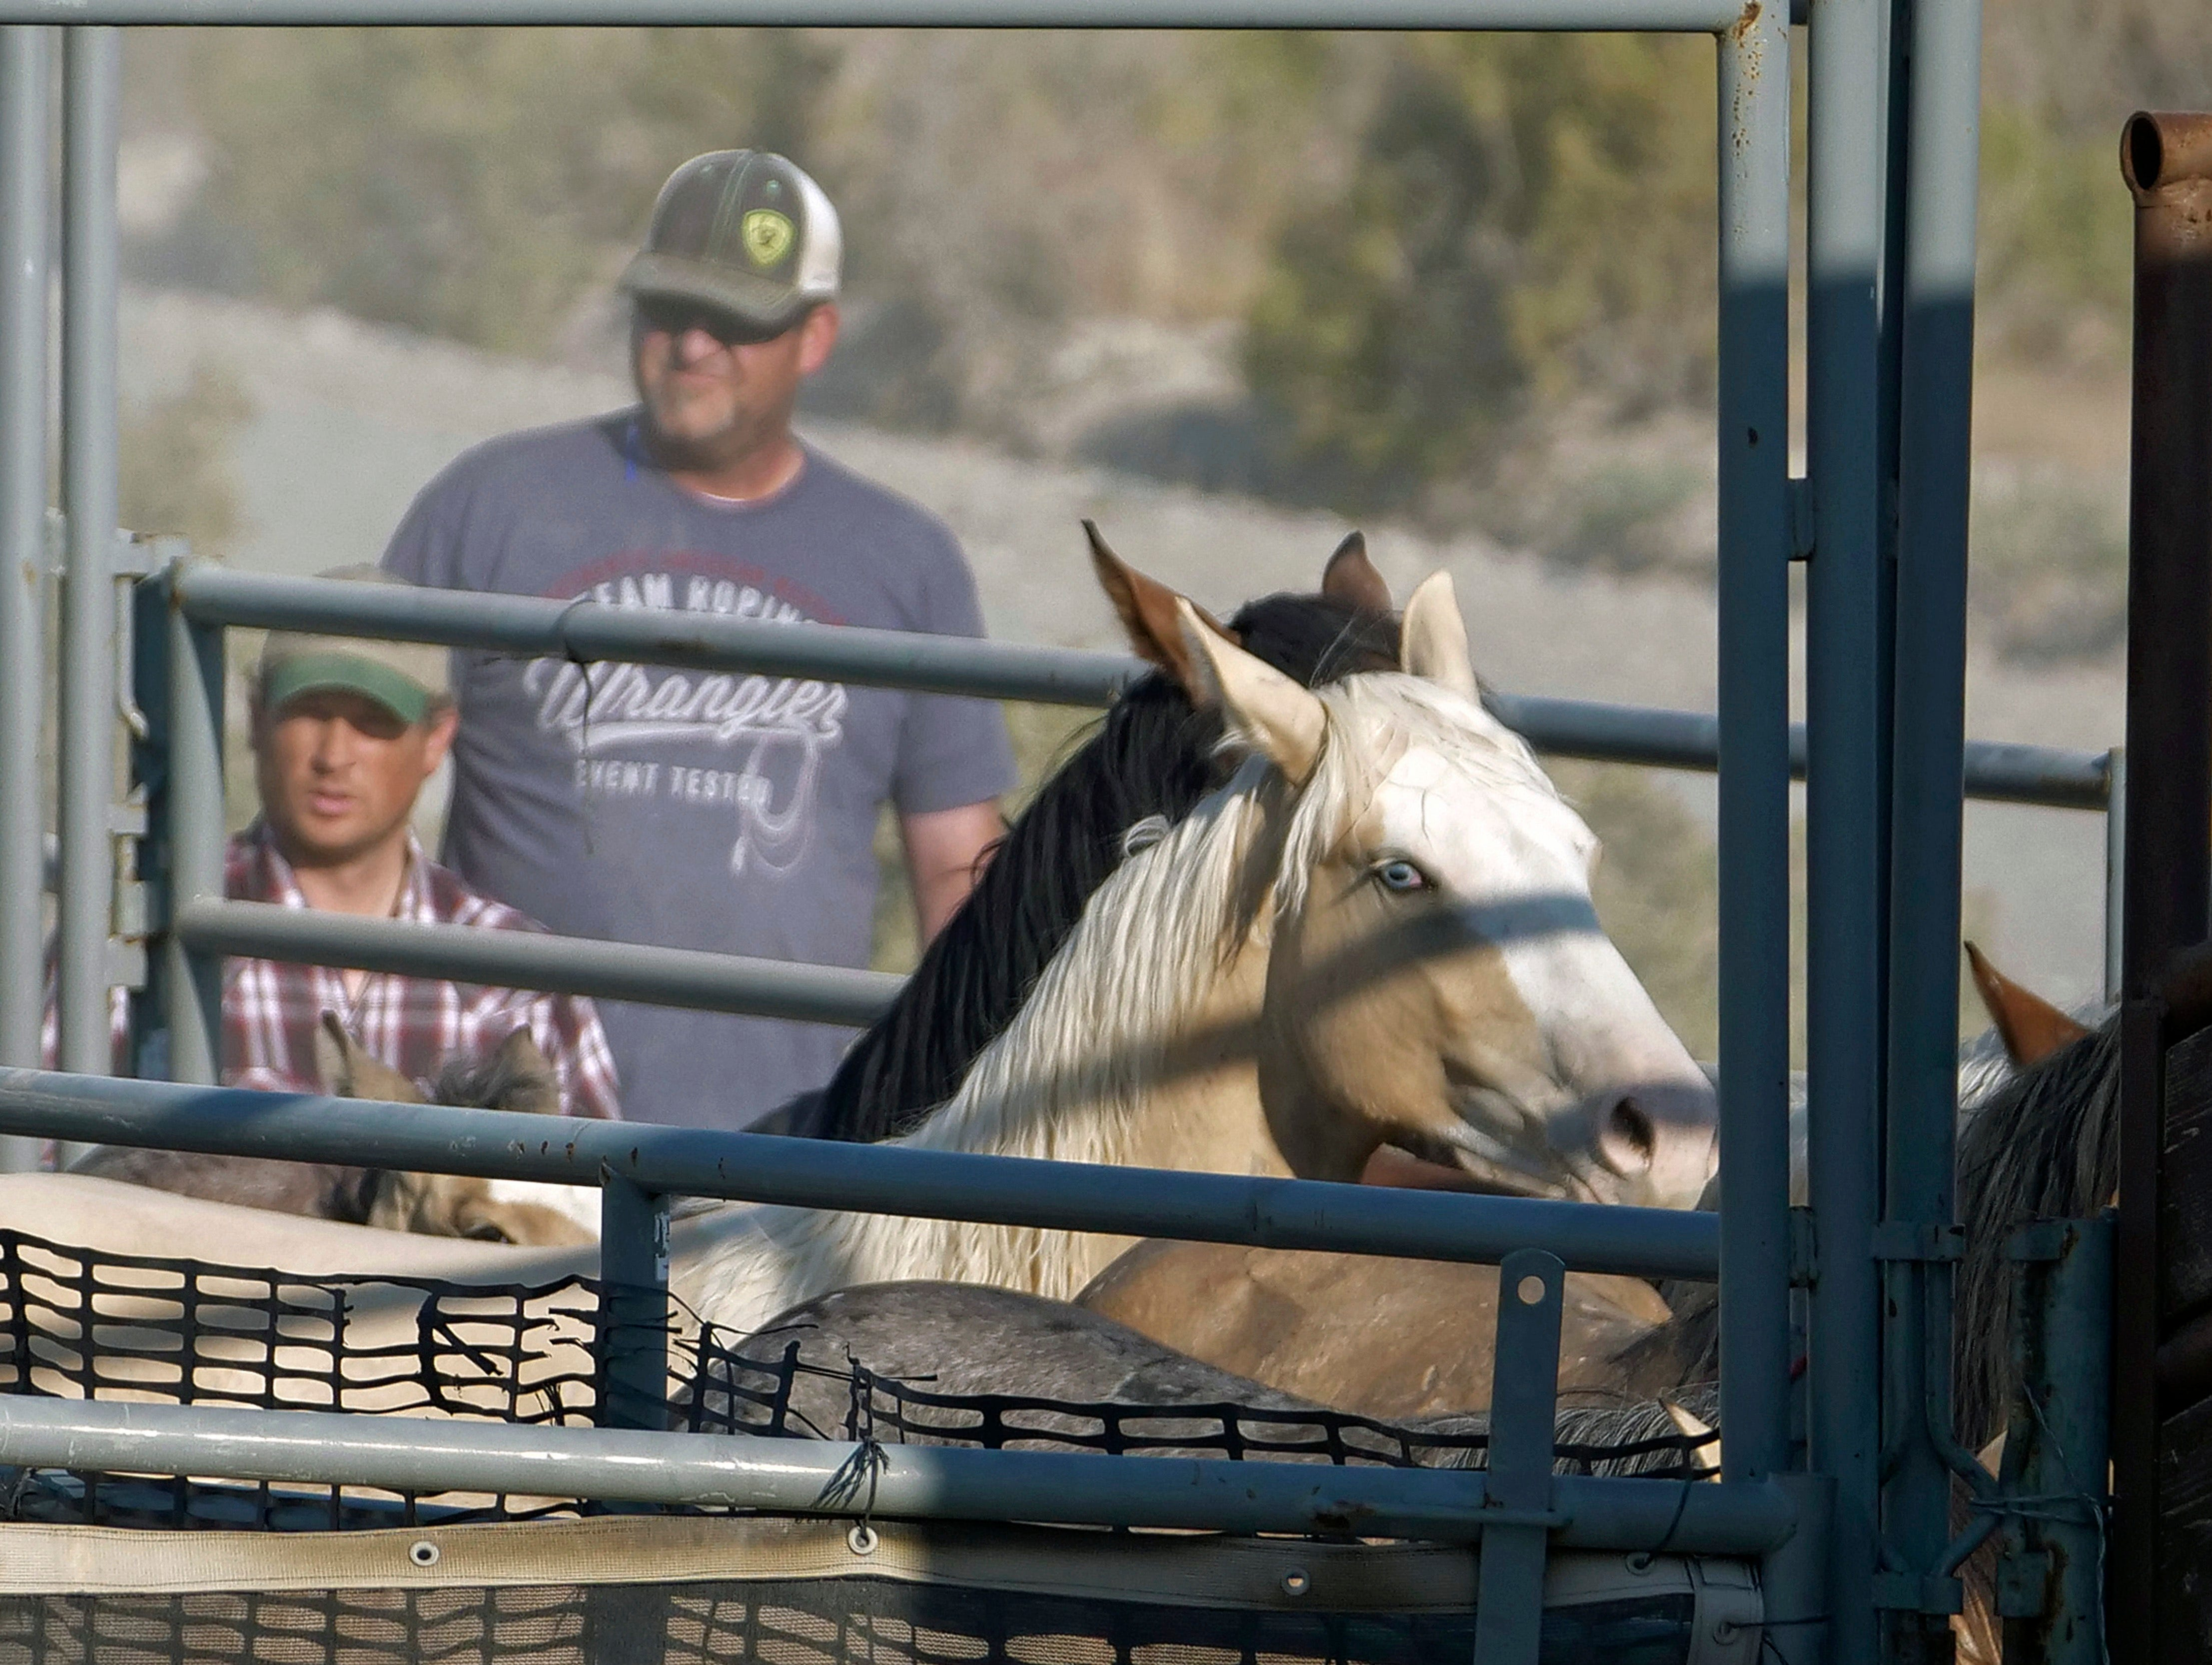 Wild horses are held in a temporary pen after being rounded up the night before due to insufficient water to sustain them, near Salt Lake City.